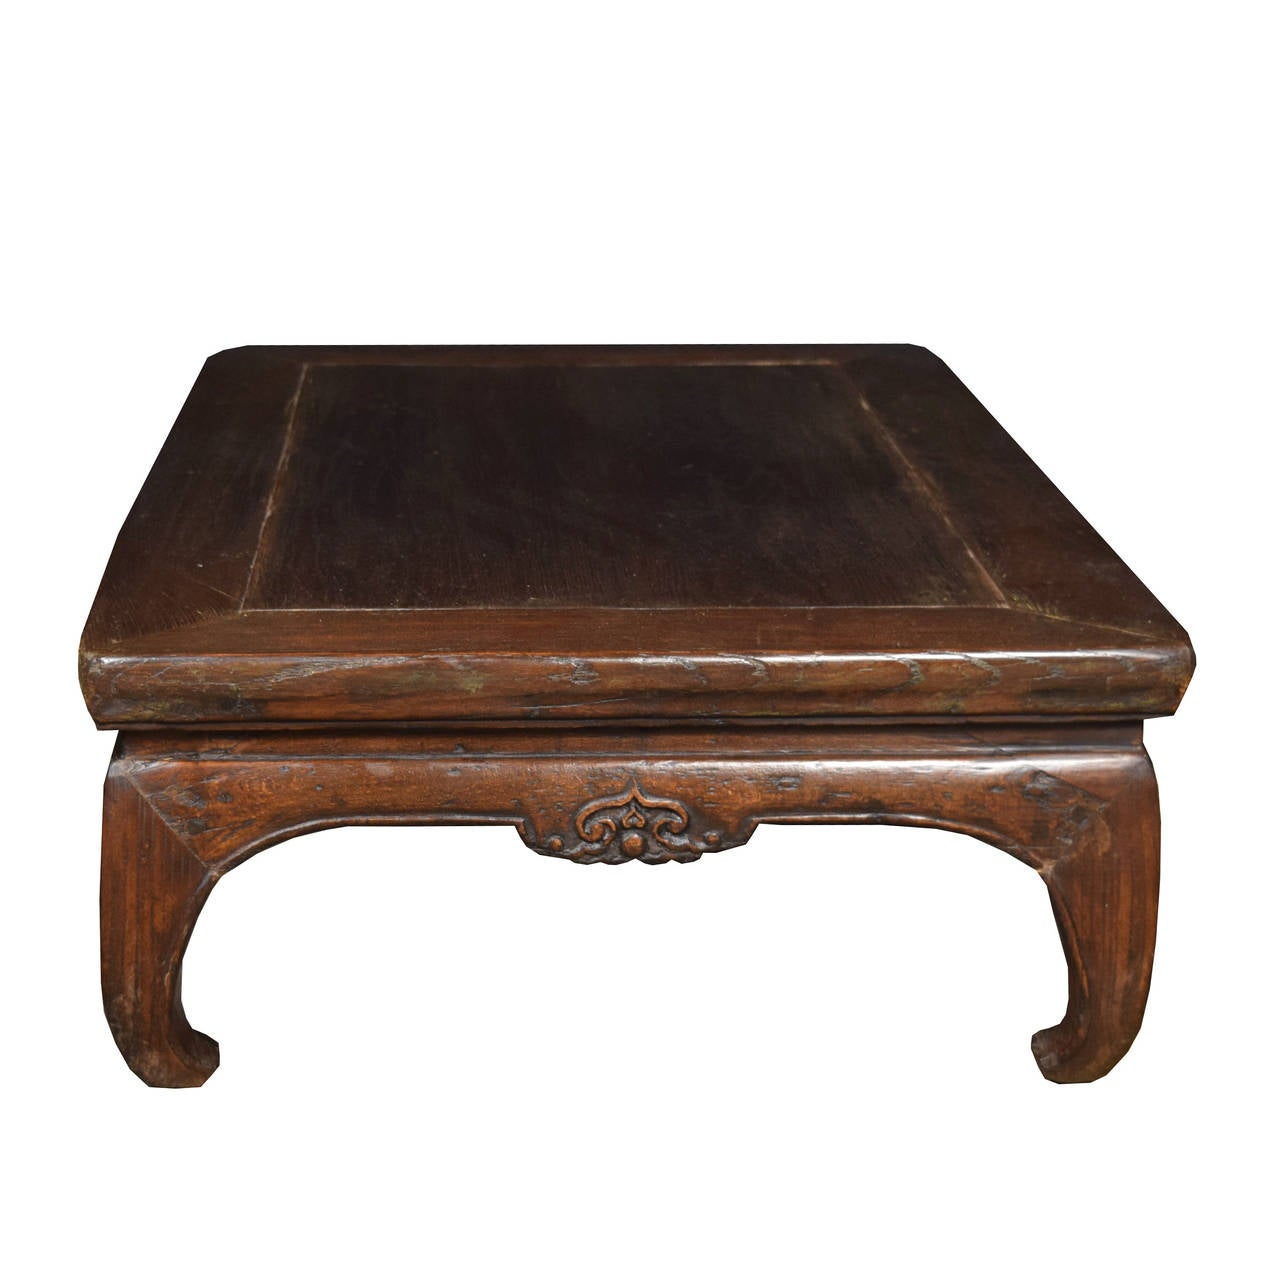 Low Tables For Sale Chinese Low Table For Sale At 1stdibs